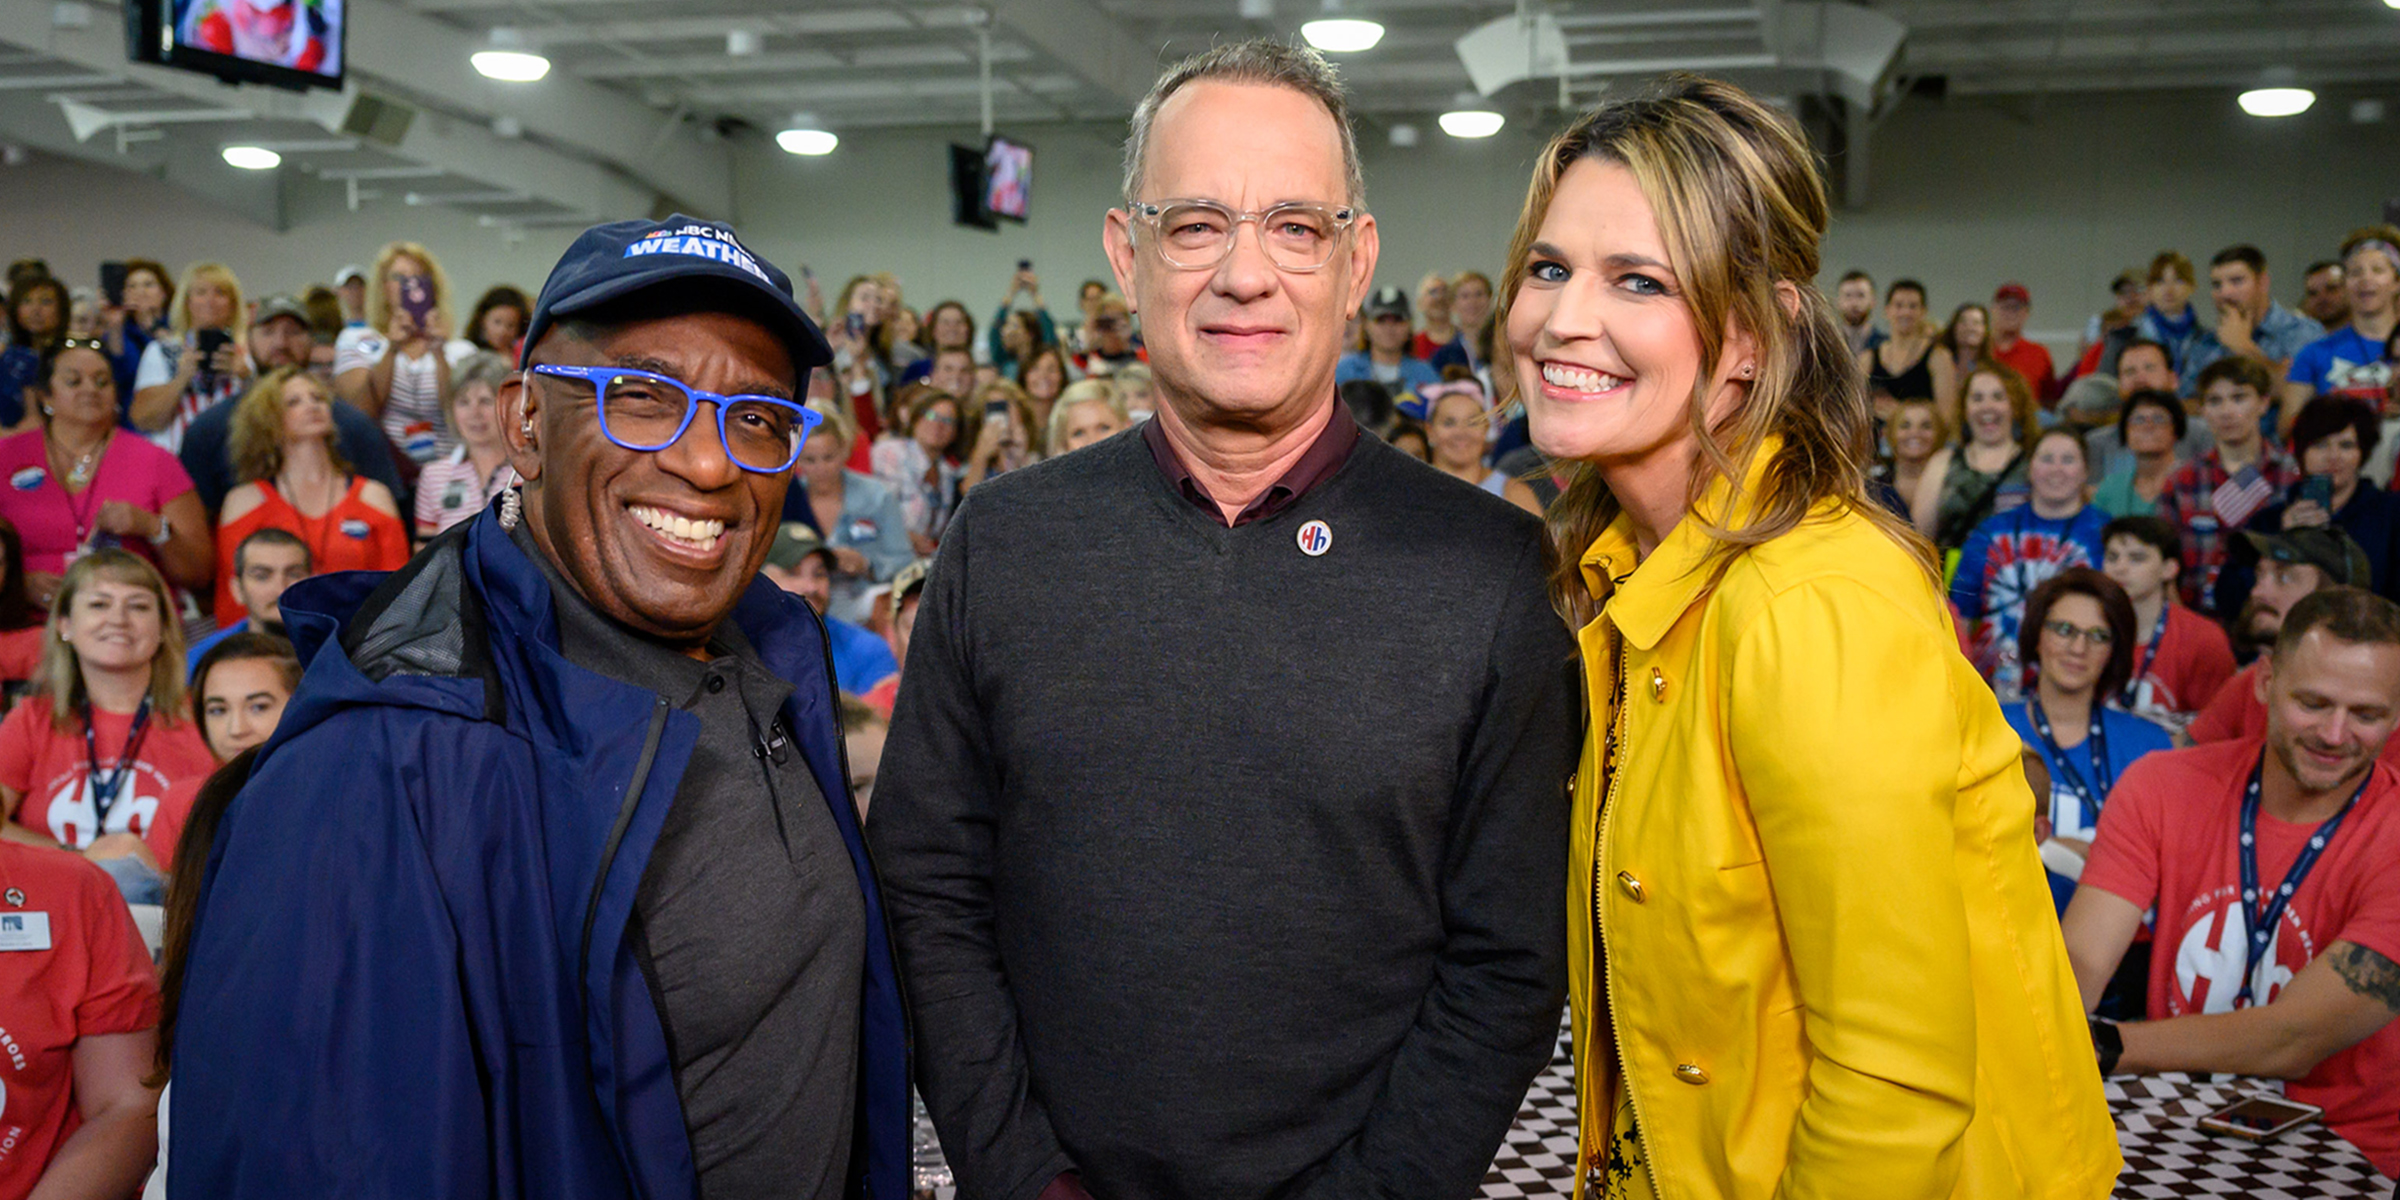 TODAY salutes Hidden Heroes with Tom Hanks, Elizabeth Dole and Sheryl Crow